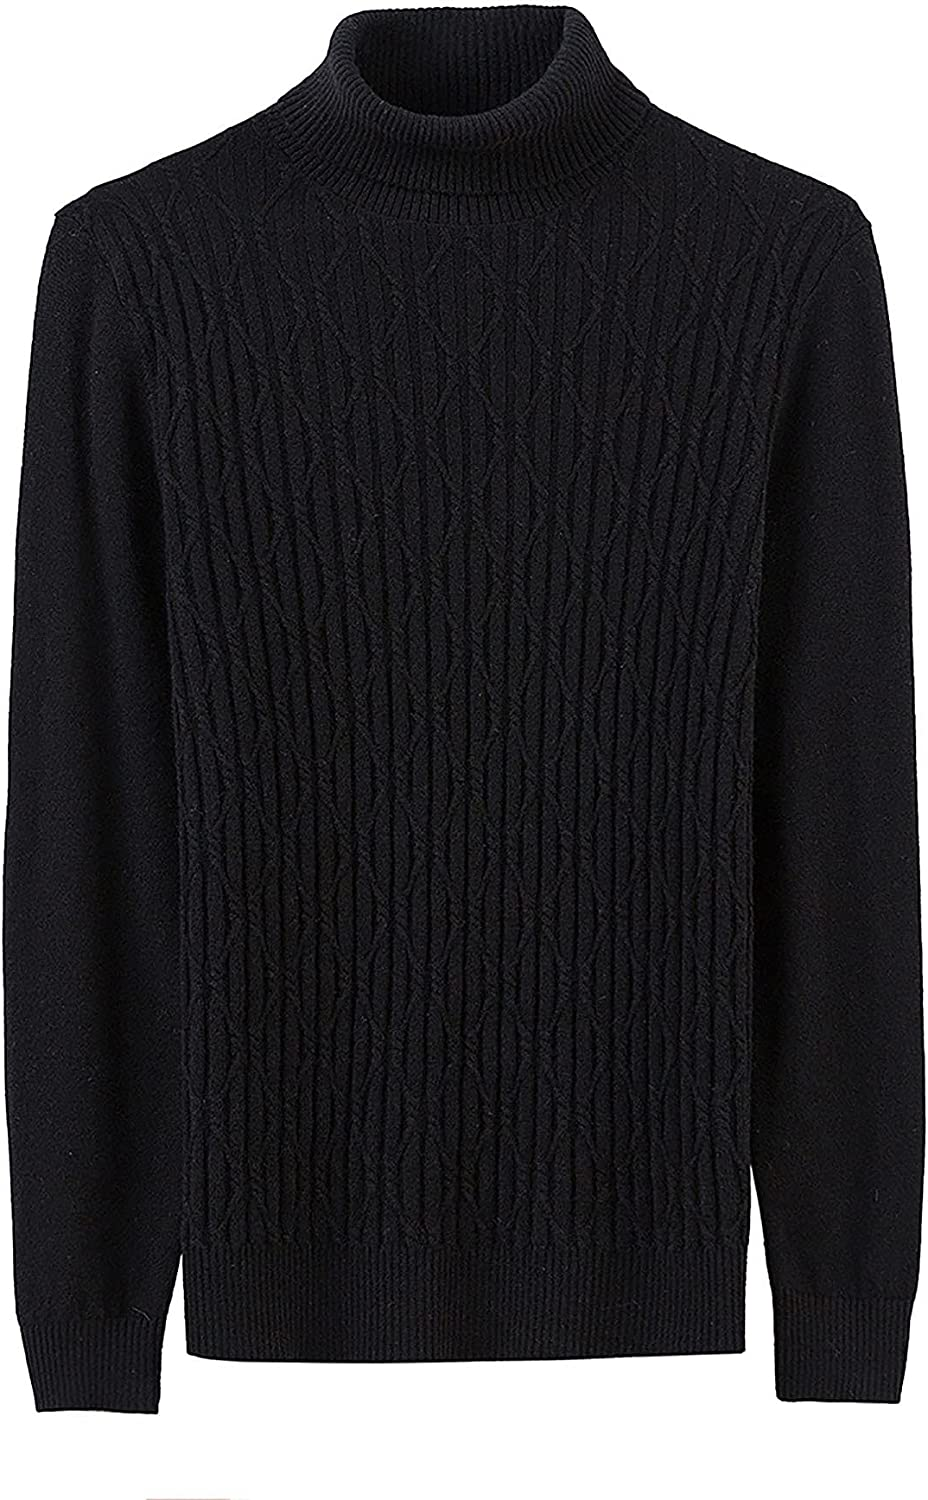 LZJDS Men's Slim Fit Turtleneck Sweater Cashmerecasual Pullover Sweater Basic Twist Patterned Knitted Sweater